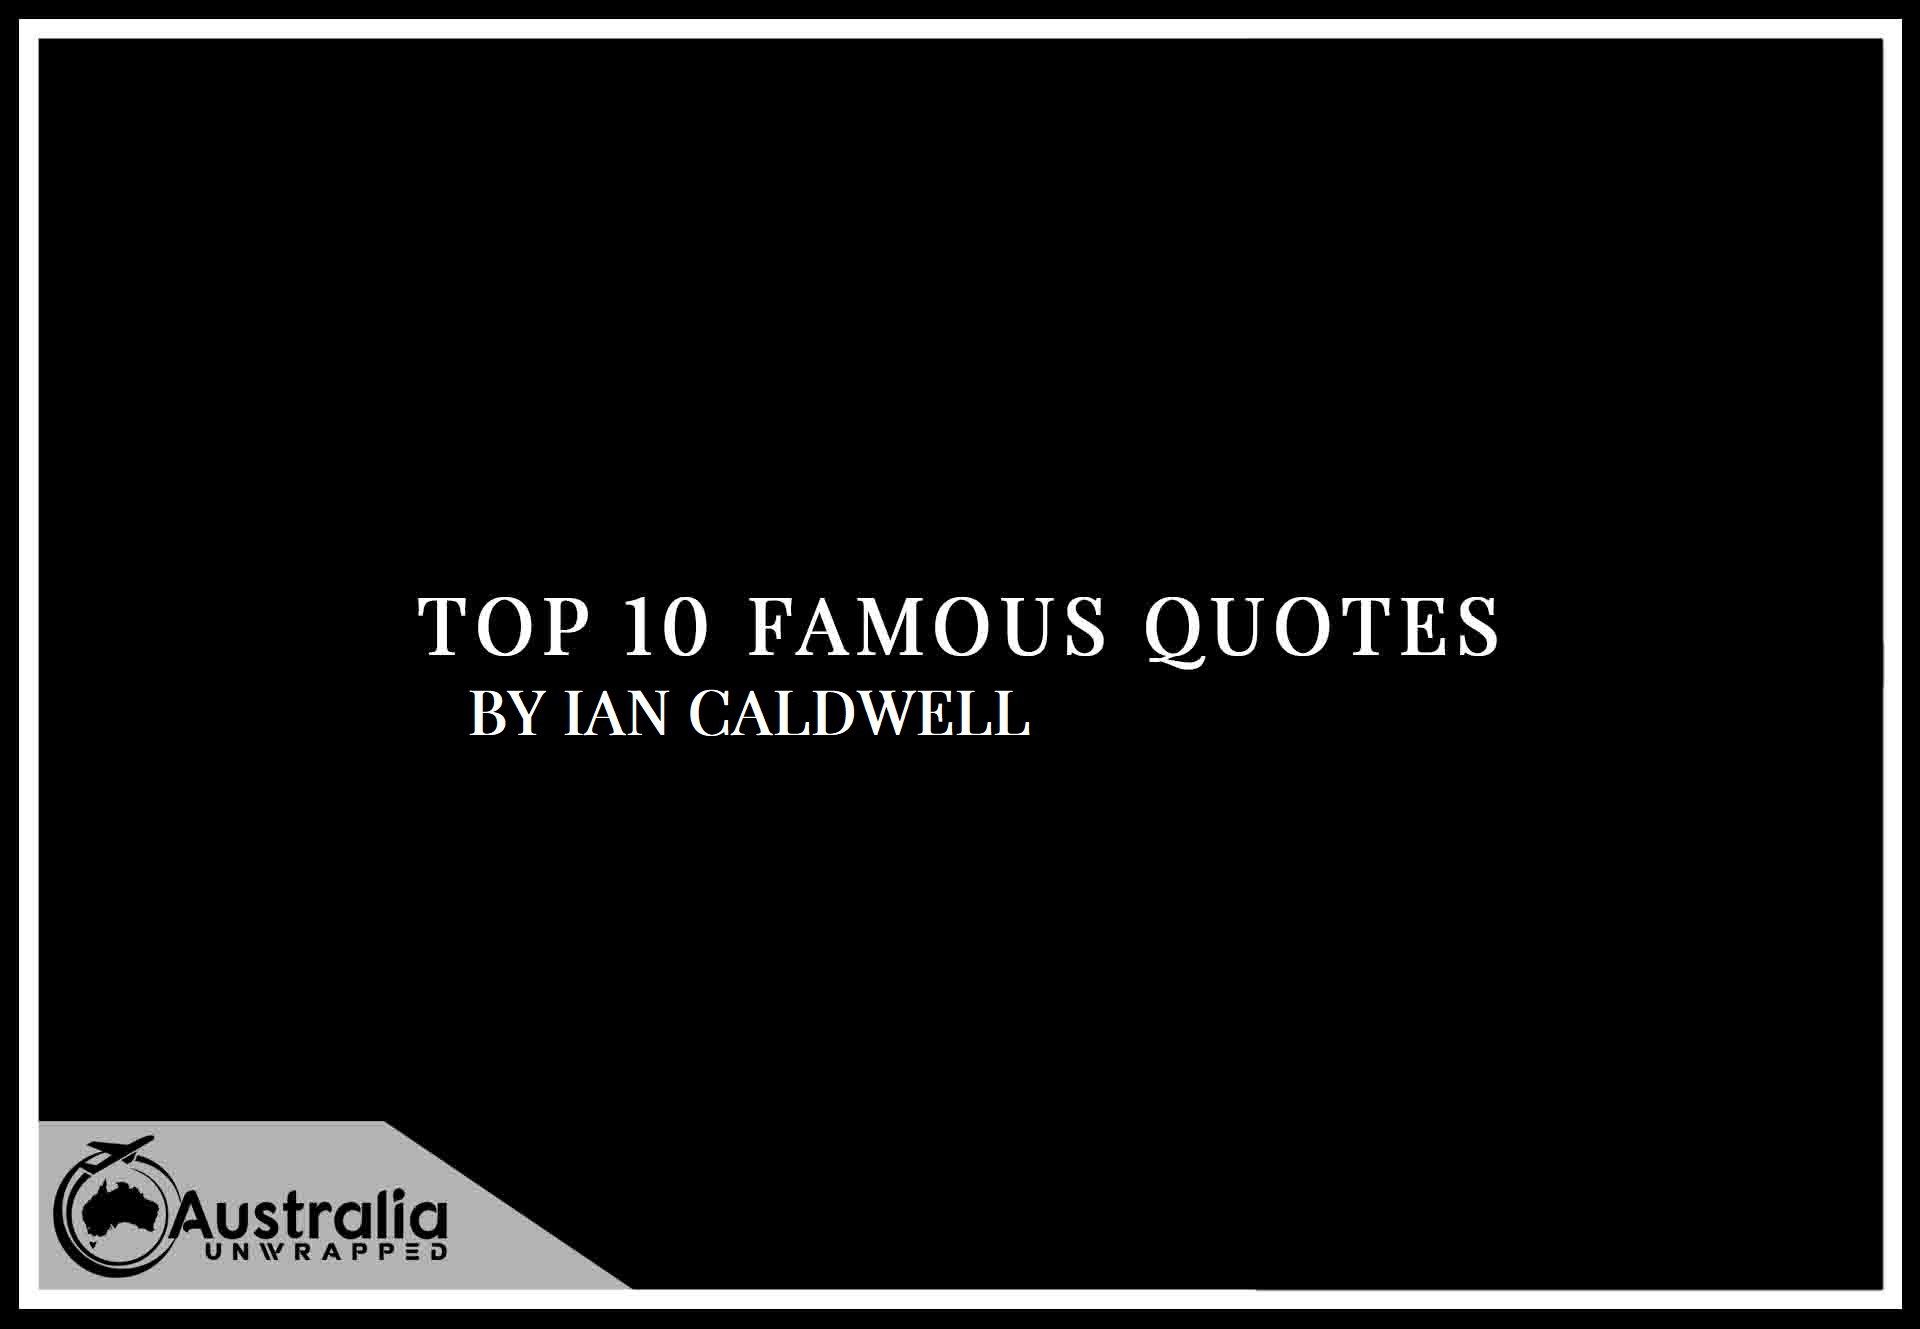 Top 10 Famous Quotes by Author Ian Caldwell